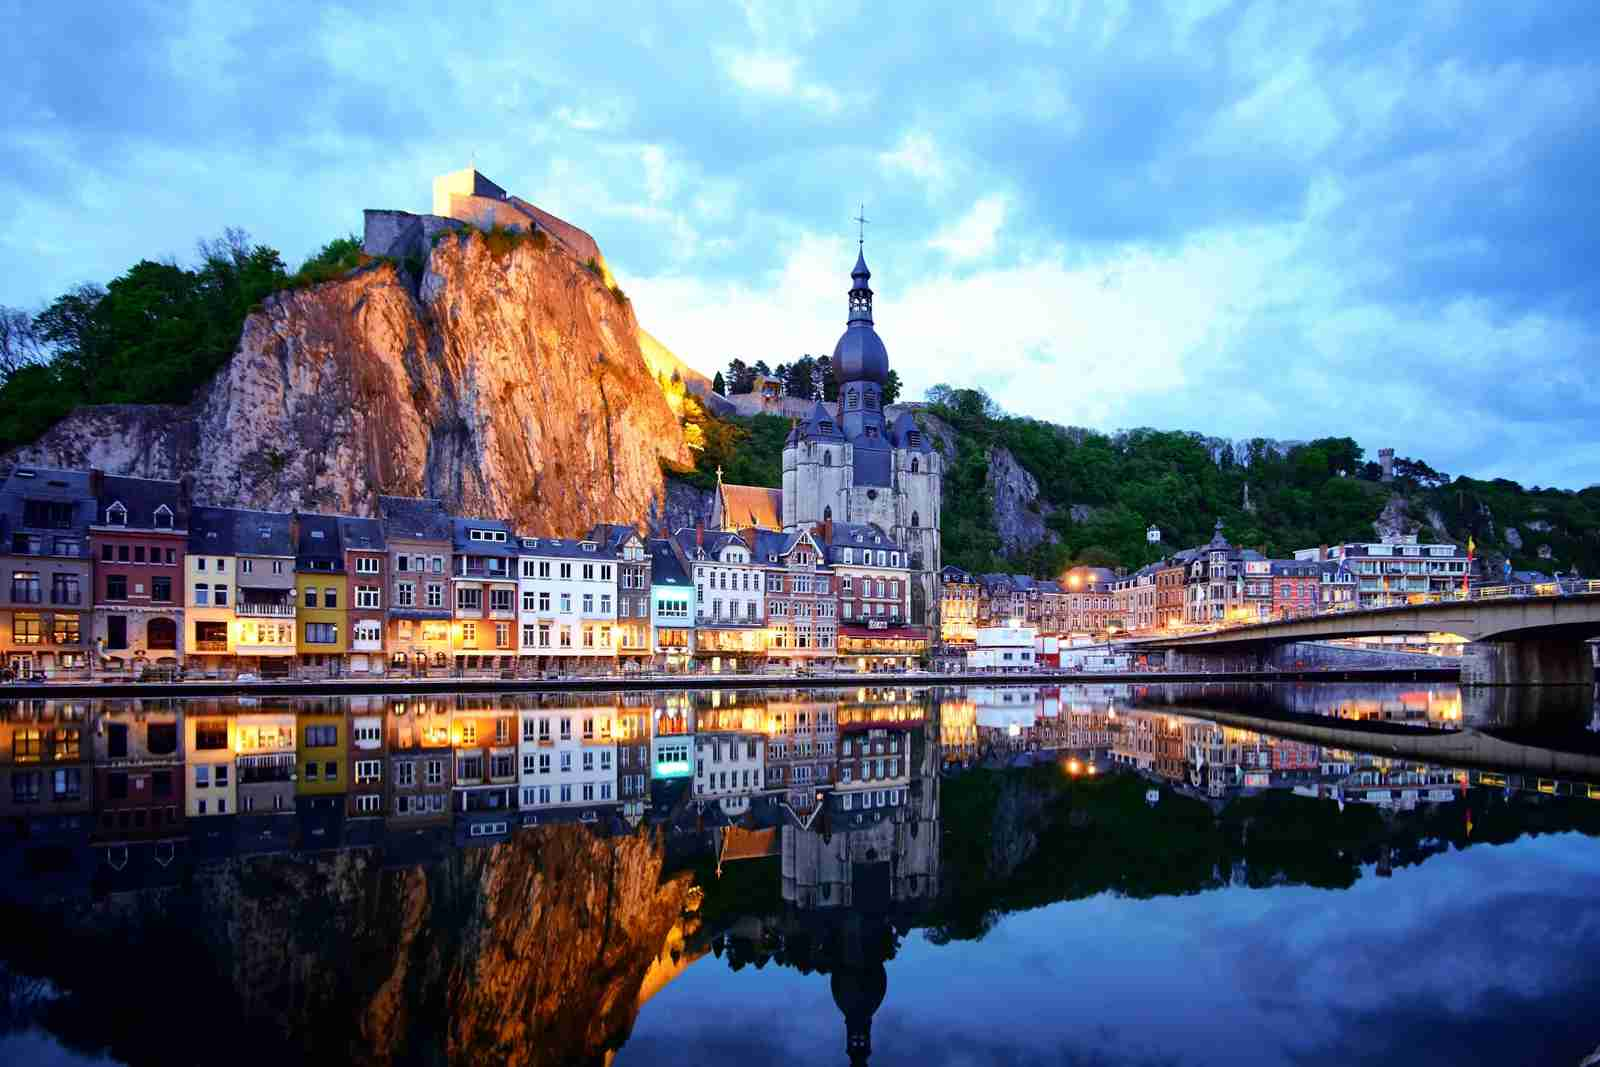 Dinant, Belgium. (Photo by Calin Niculescu/EyeEm/Getty Images)